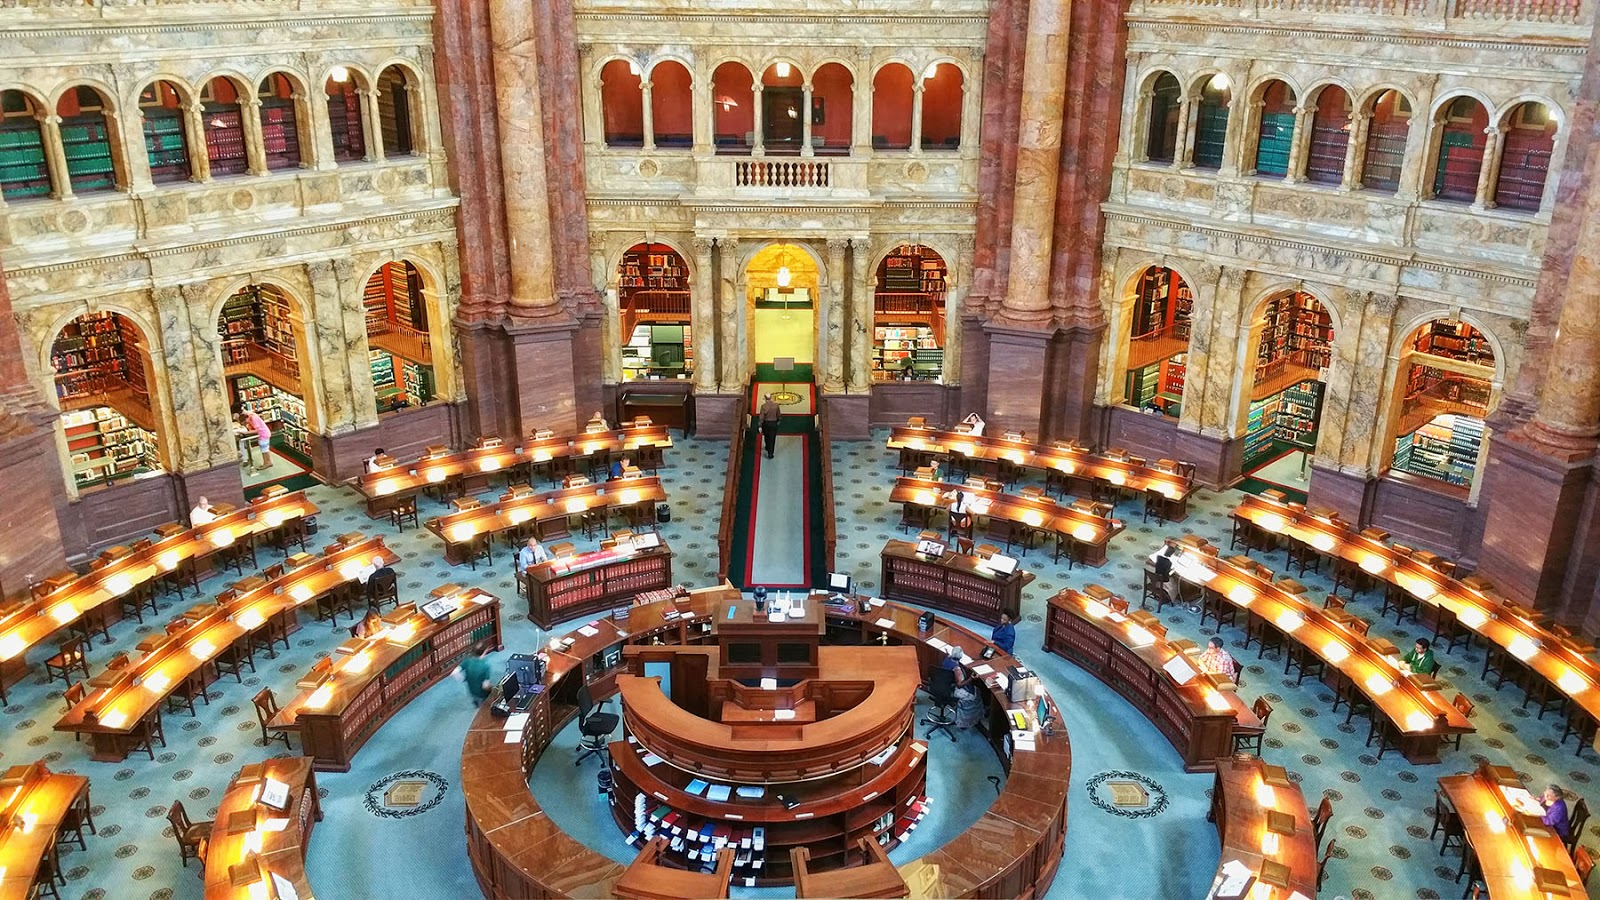 Every book its reader library of congress one of the most the library of congress reading room has been described as the most beautiful room in washington dc the lost symbol by dan brown but unless you have a biocorpaavc